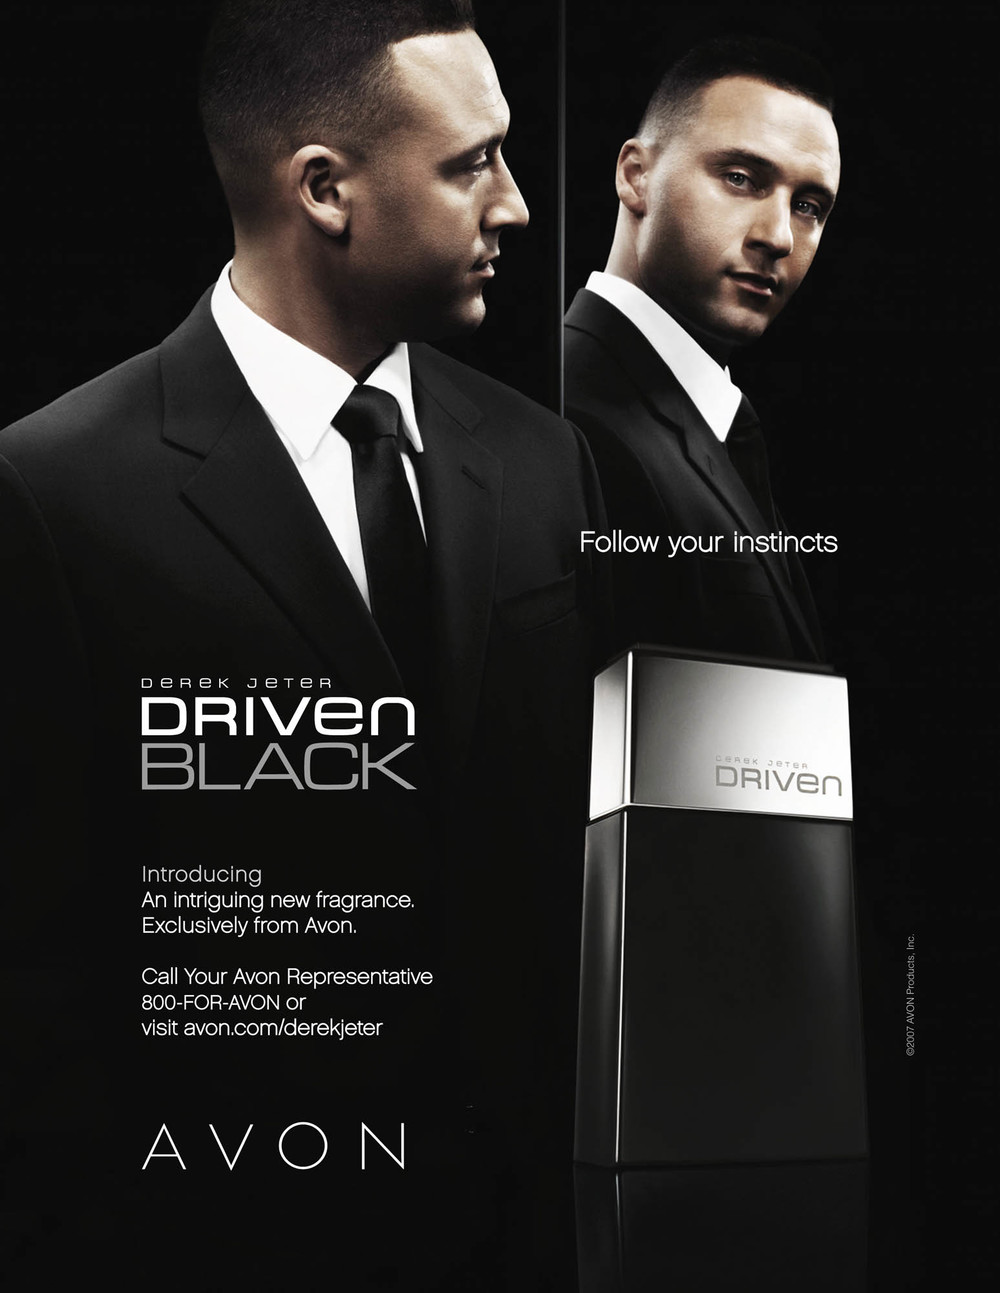 Derek Jeter for Avon Driven Black - New York City